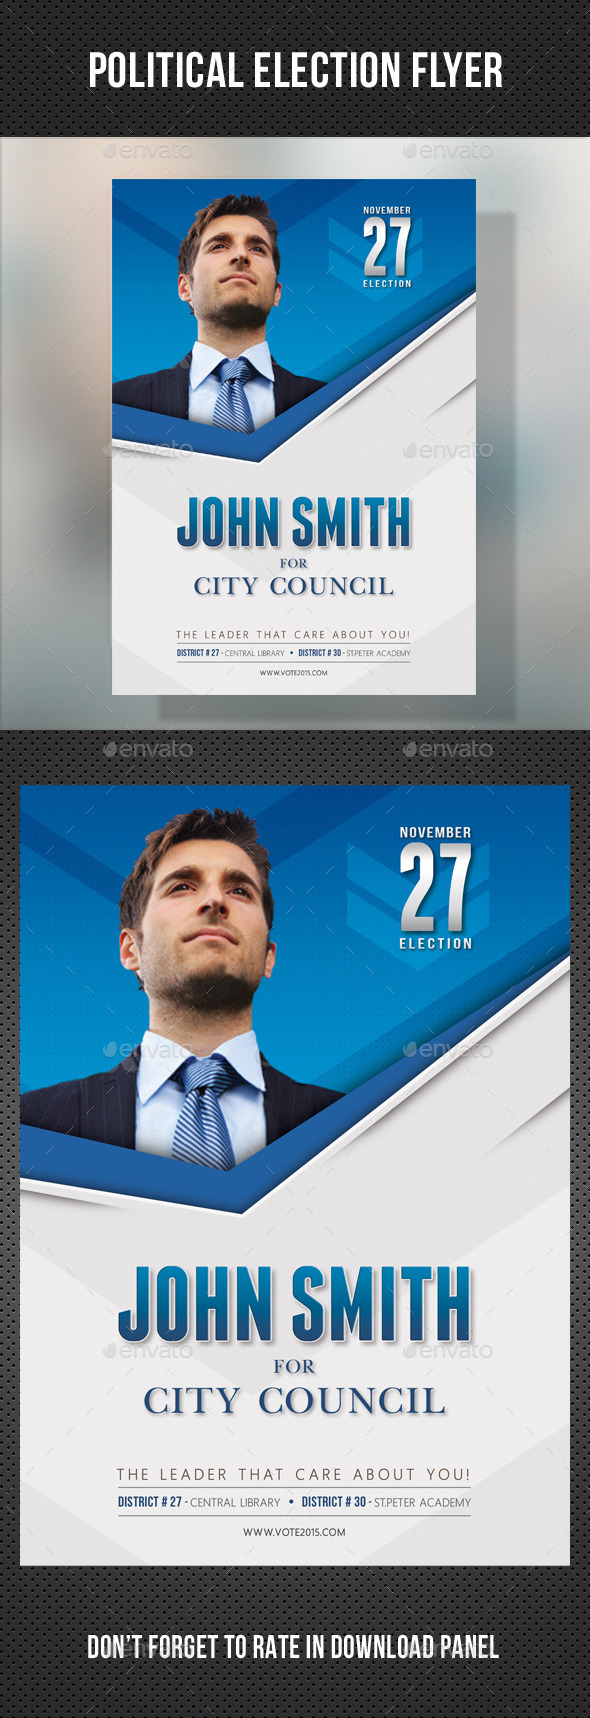 GraphicRiver Political Election Flyer Template V2 11056376